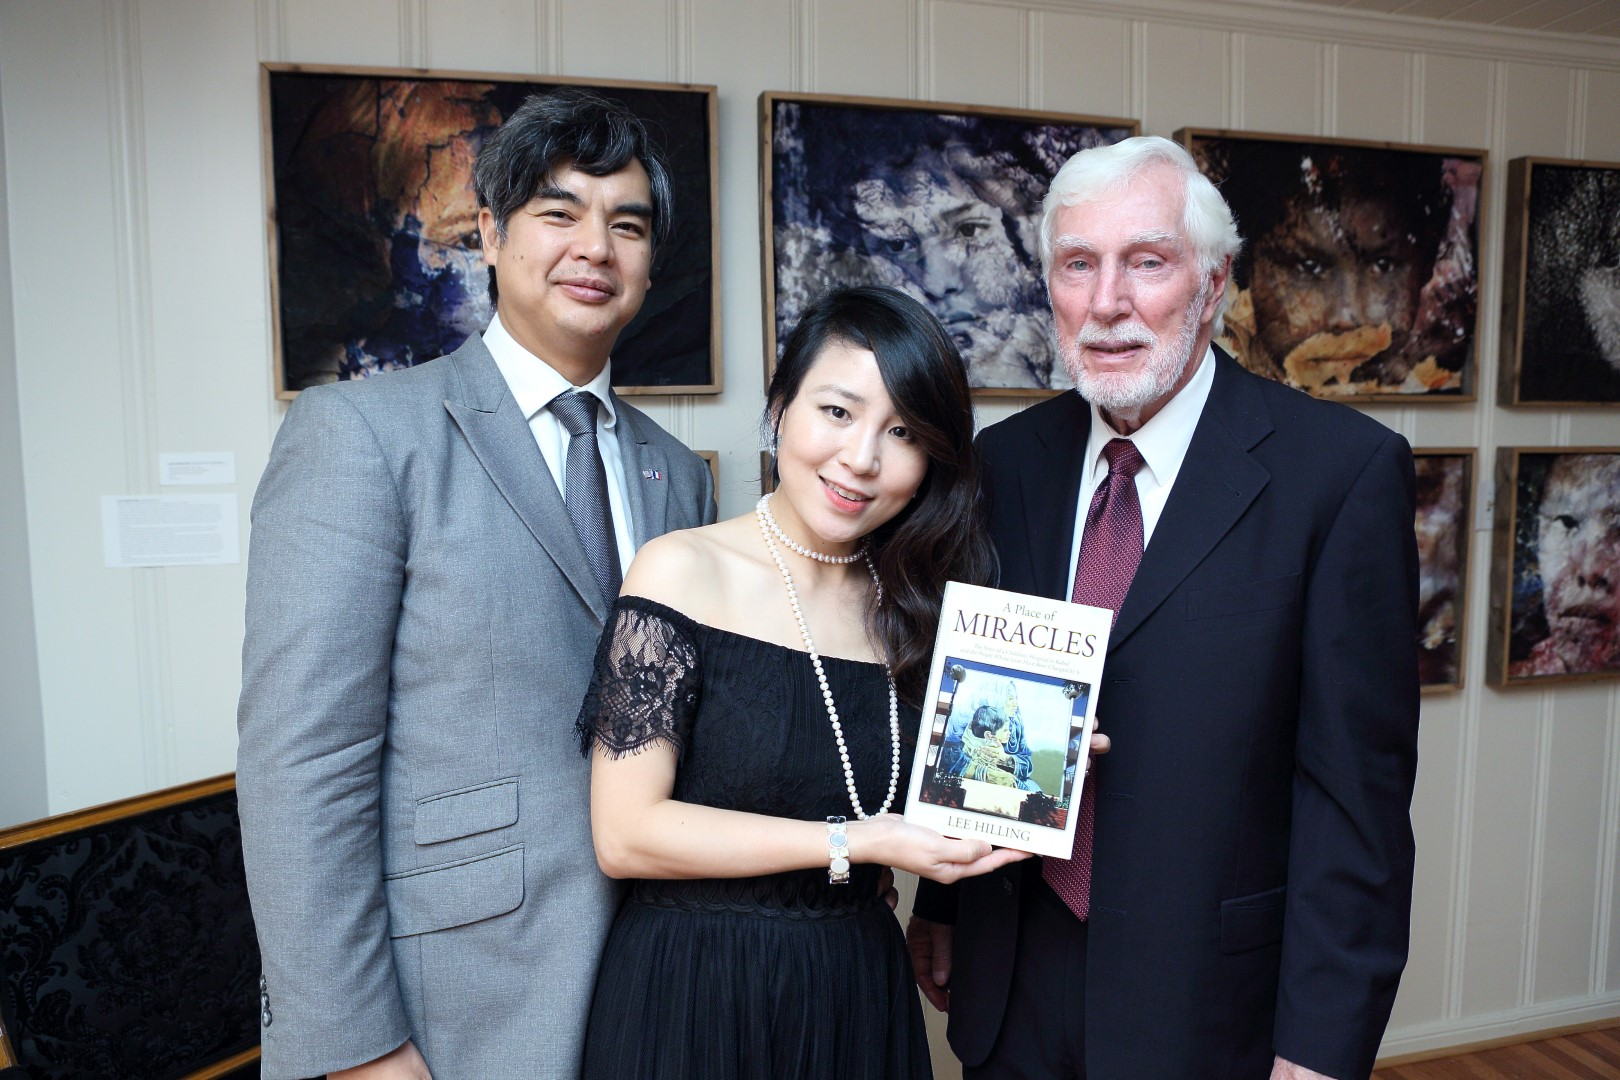 Consul Gen of France Sujiro Seam, wife Jane and Author Lee Hilling